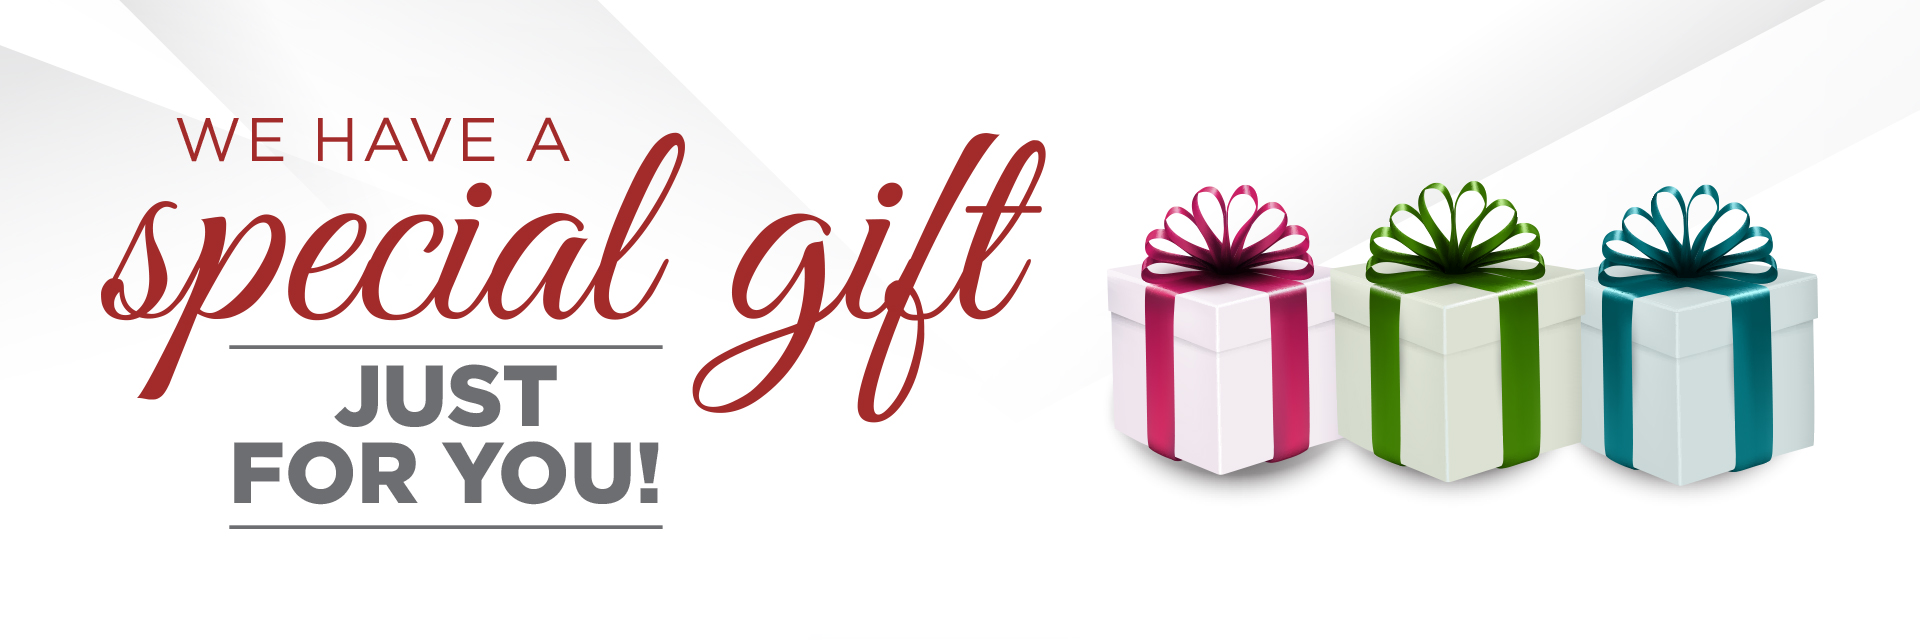 We Have a Special Gift Just For You!